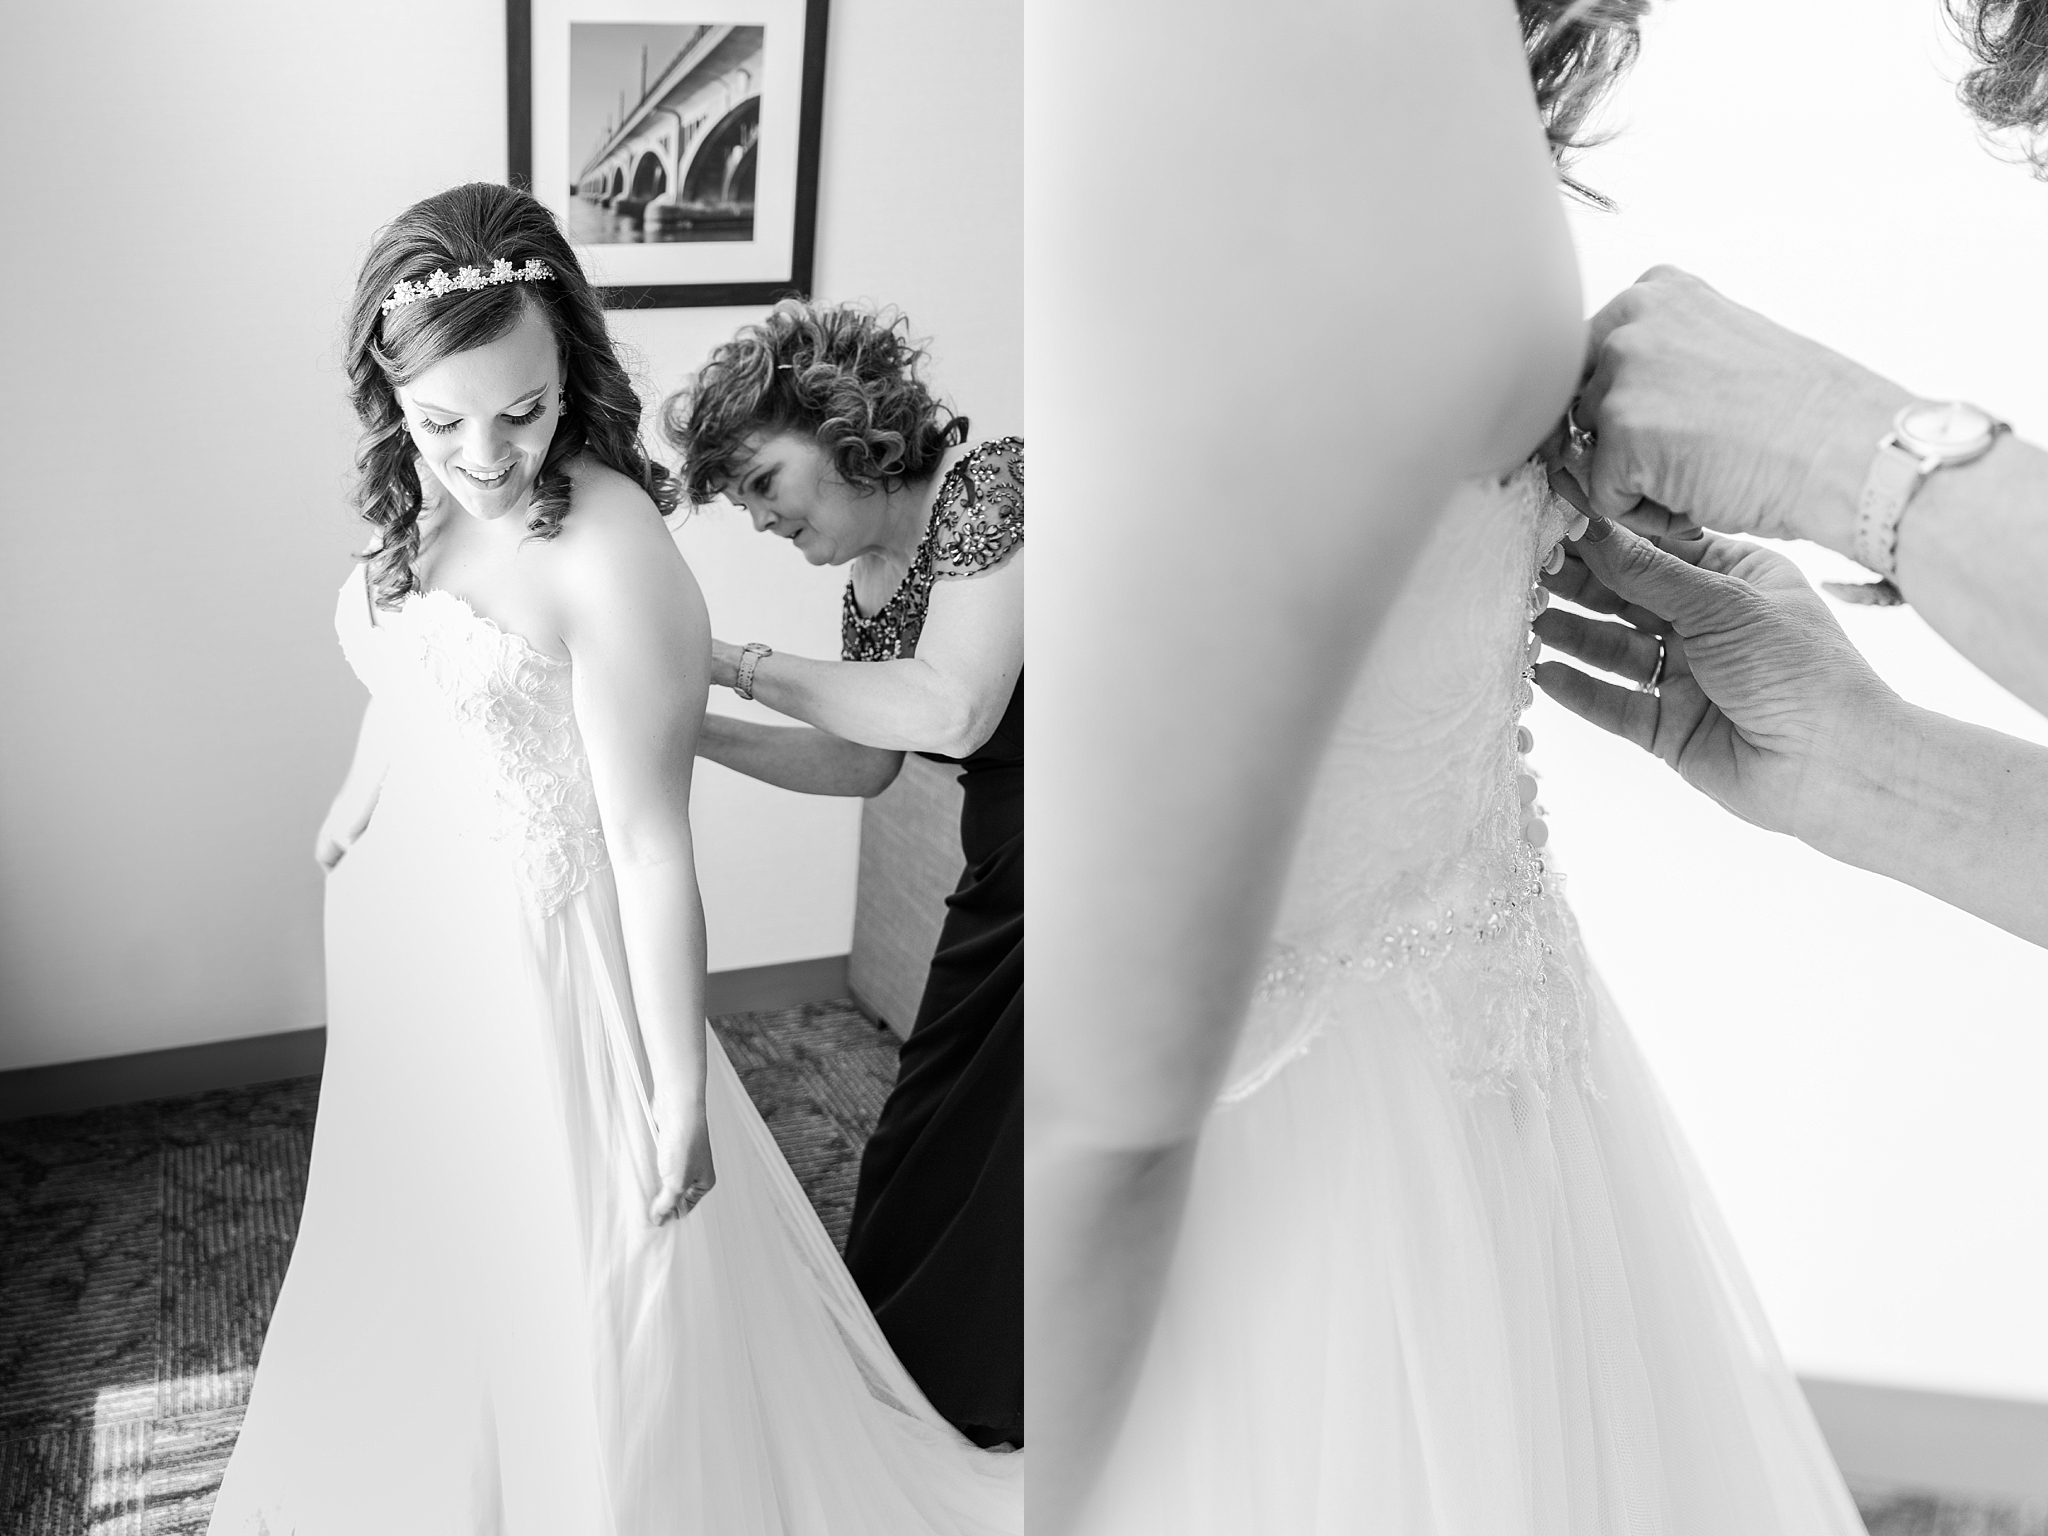 romantic-artful-candid-wedding-photos-in-st-clair-shores-at-the-white-house-wedding-chapel-by-courtney-carolyn-photography_0008.jpg